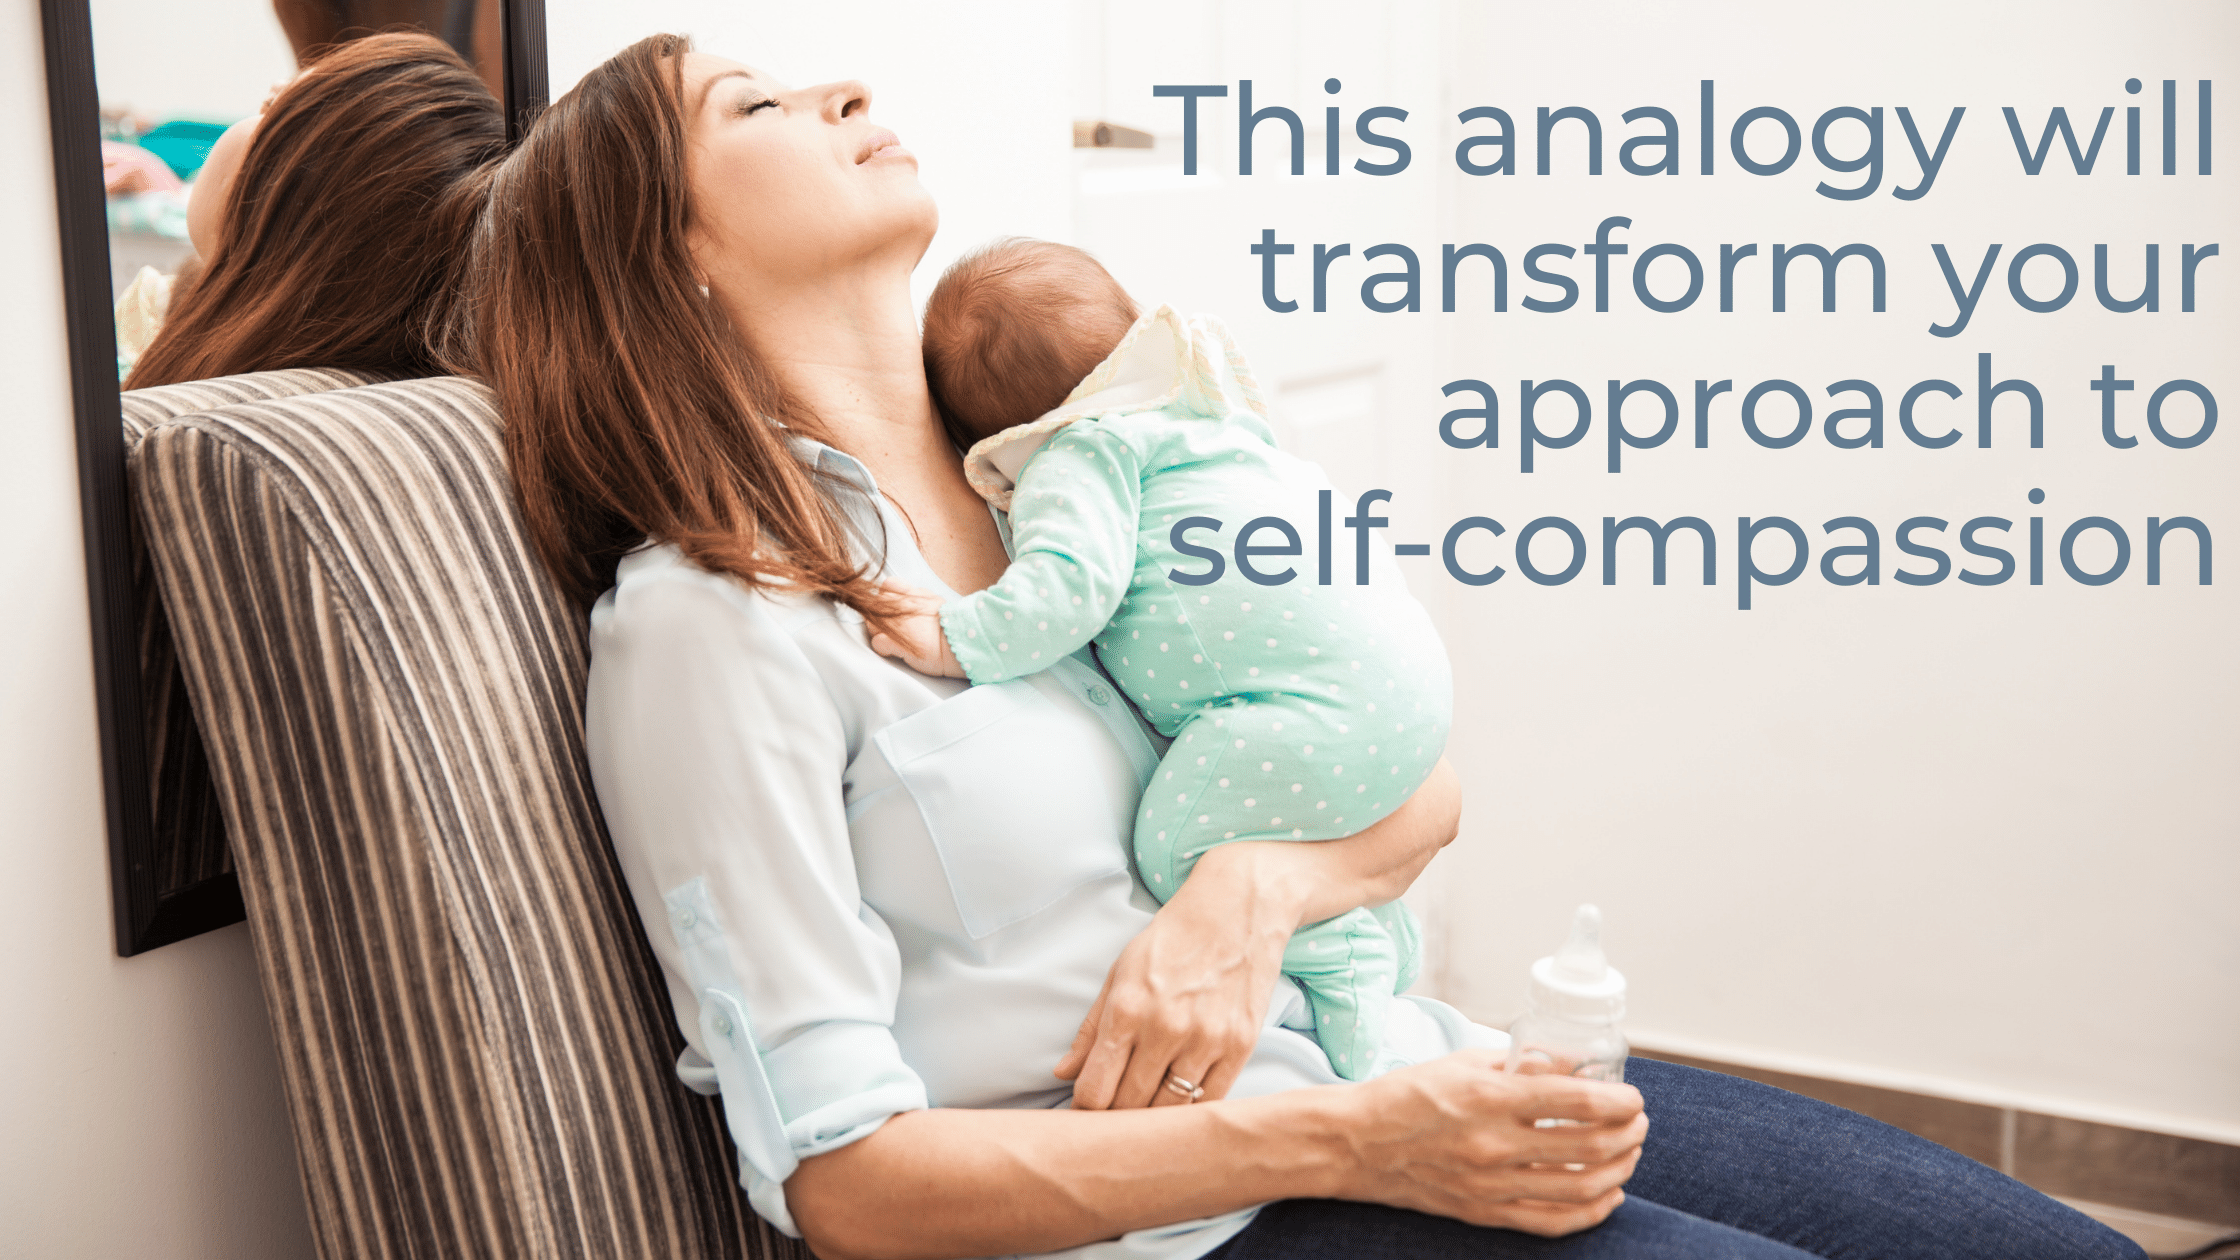 This analogy will transform your approach to self-compassion